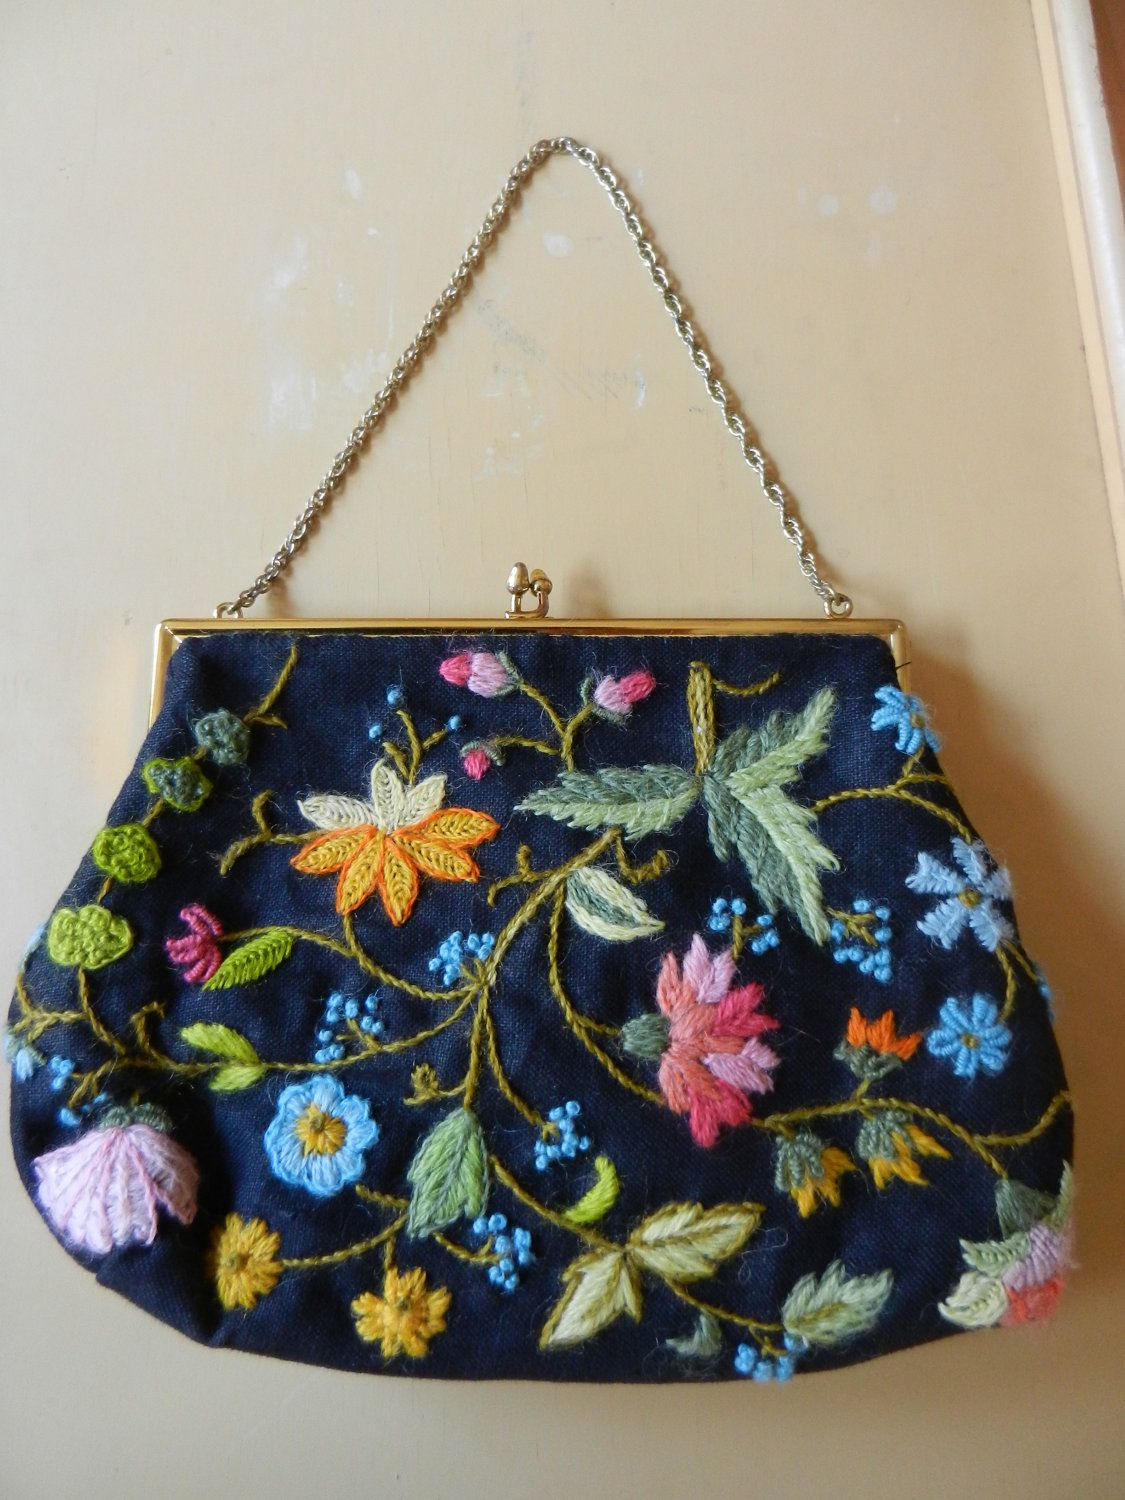 Vintage Crewelwork Embroidery Handbag Embroidery bags